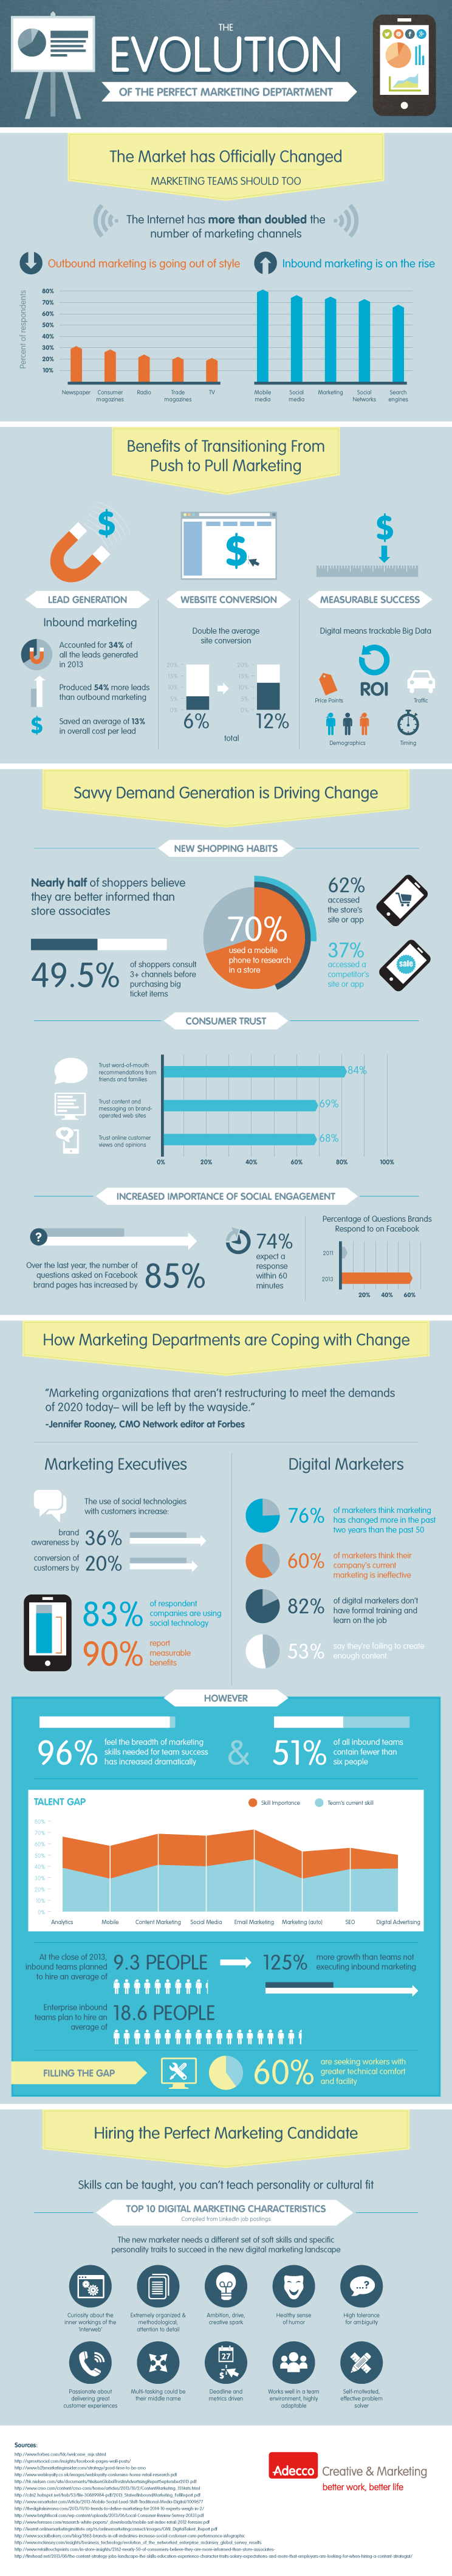 Benefits of transitioning from push to pull marketing, savvy demand generation is driving change, how marketing departments are coping with change - Explore the evolution of marketing - infographic